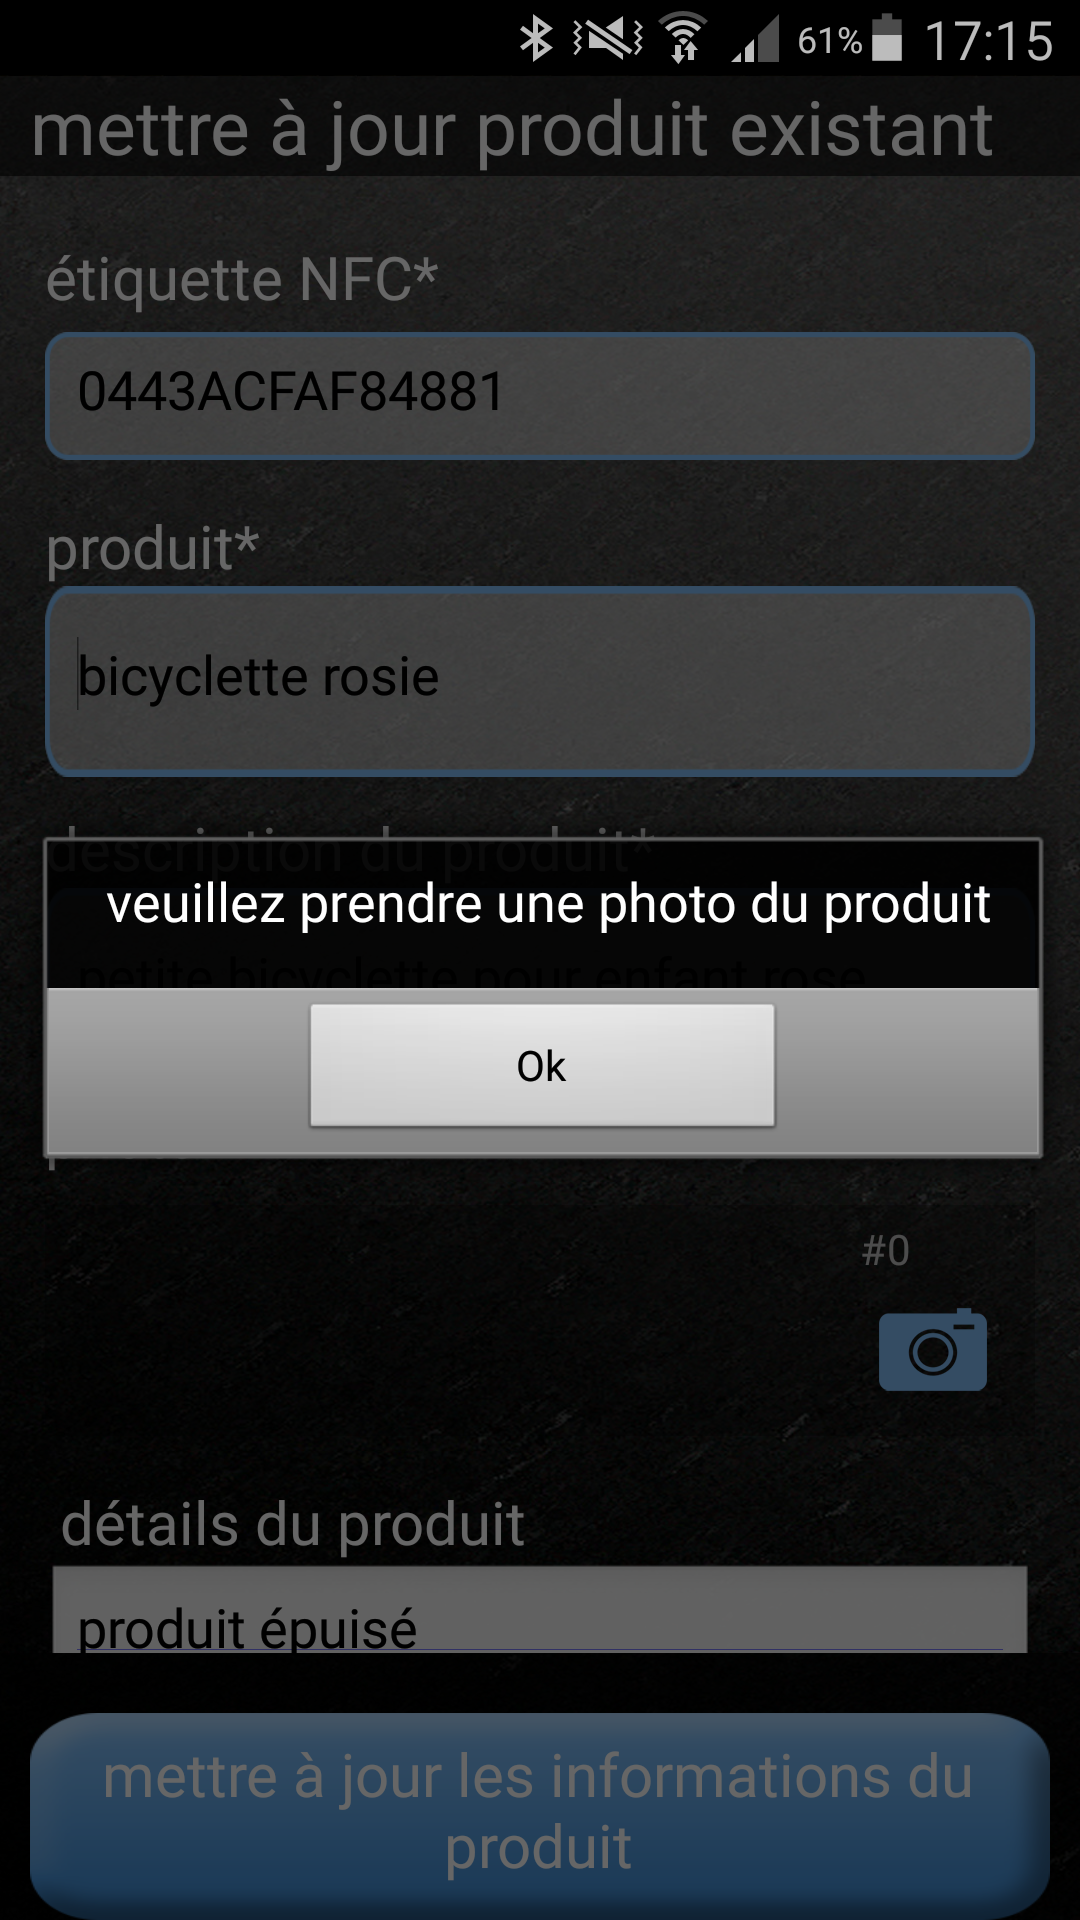 ginstr_app_productInformation_FR_6